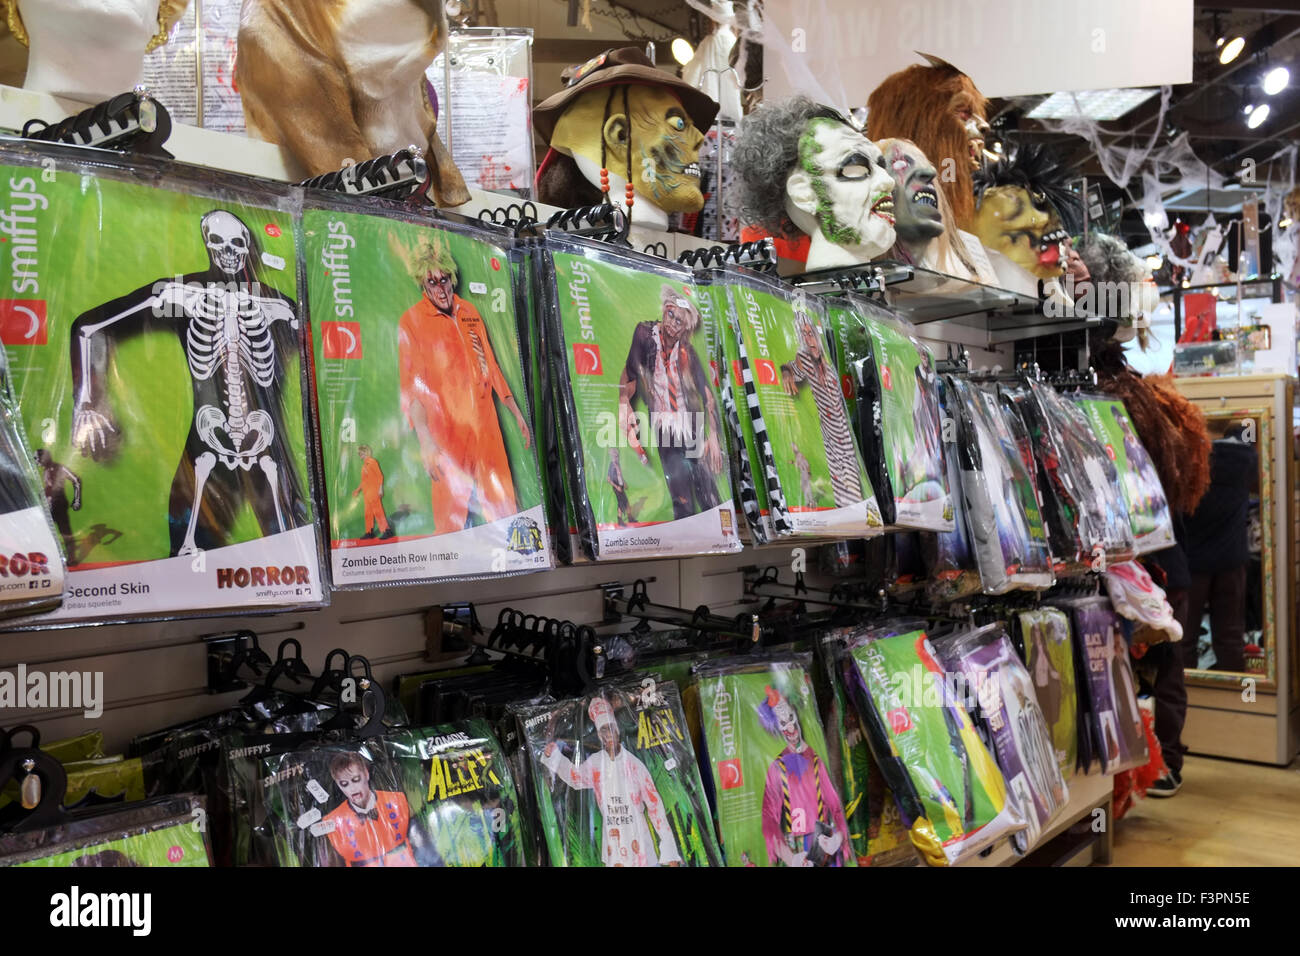 halloween costumes & masks on display with seasonal offers for sale